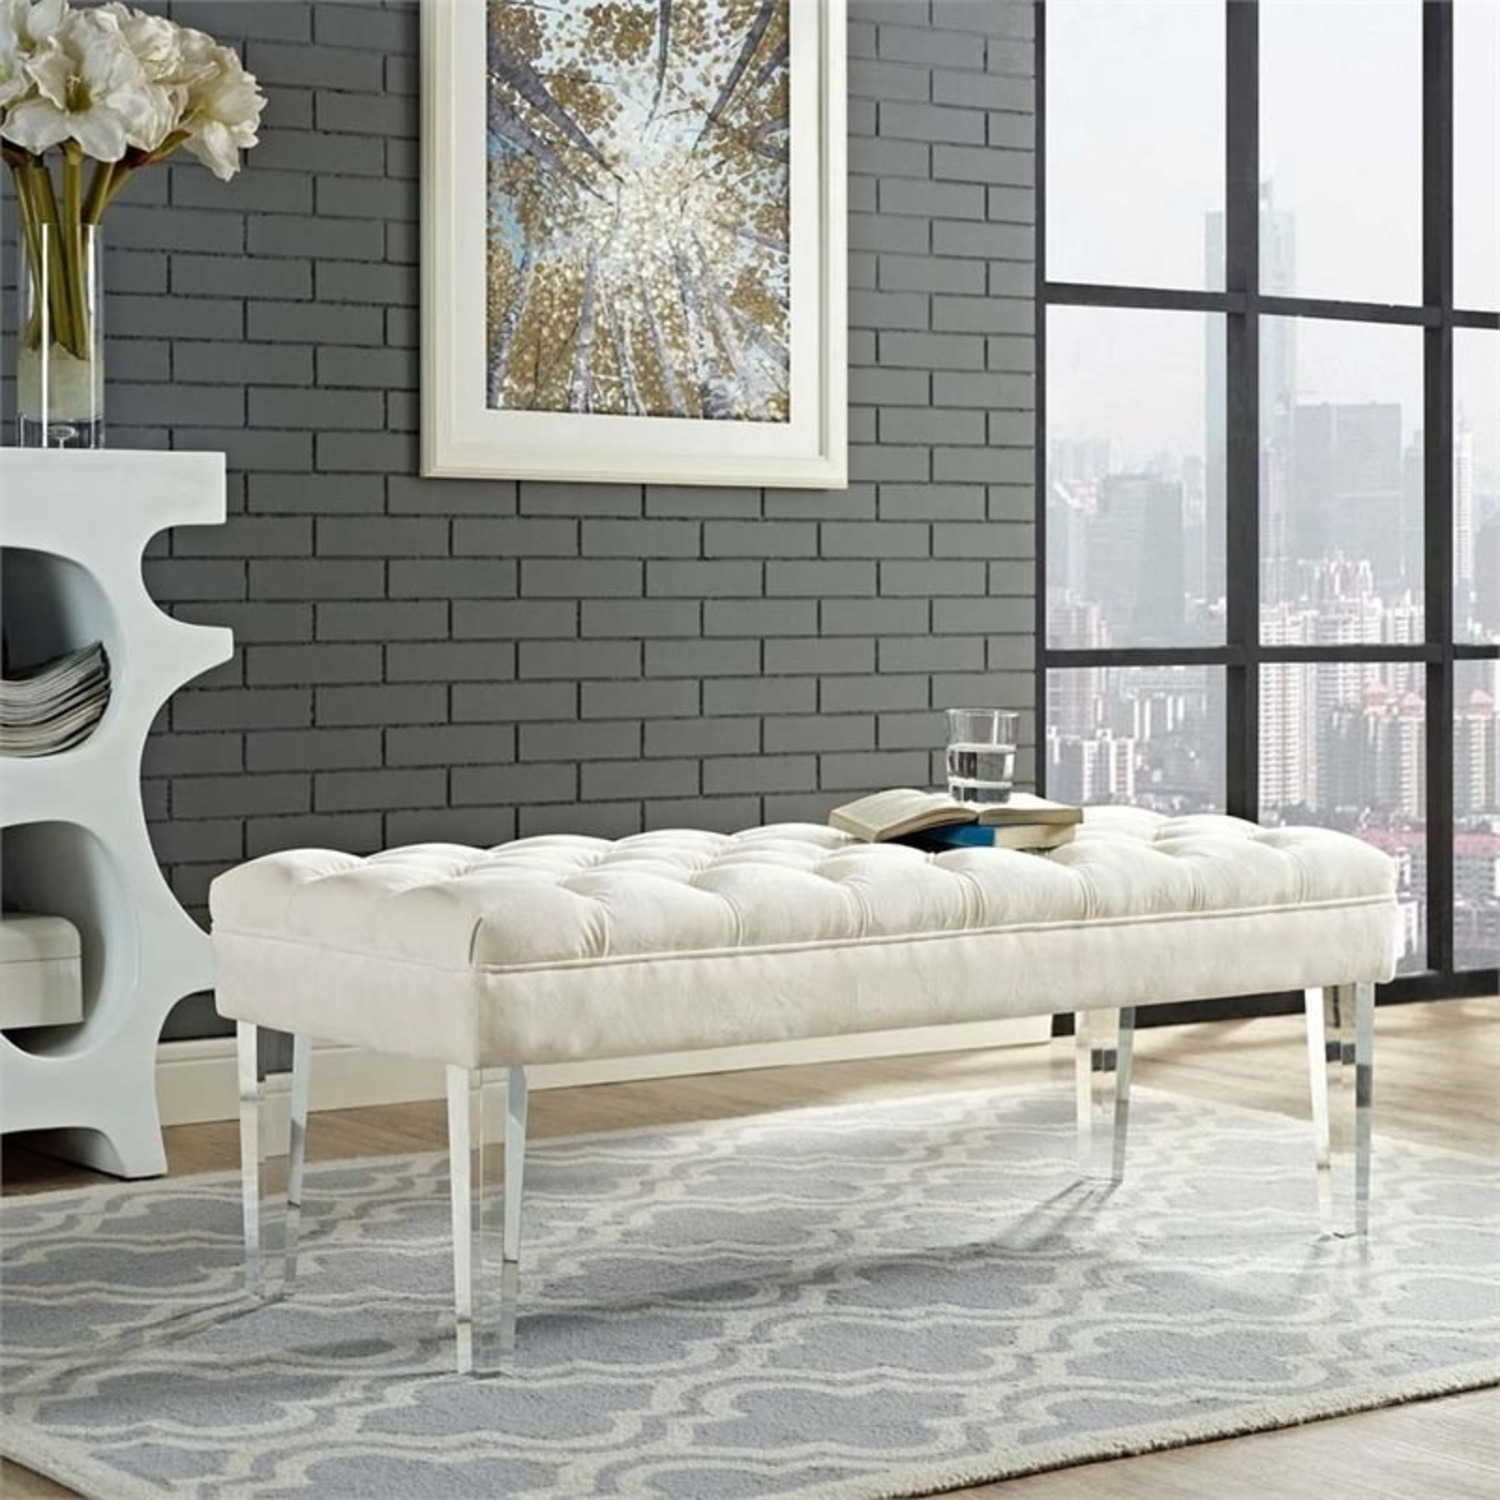 Bench In Ivory Velvet Fabric W/ Clear Acrylic Legs - image-3